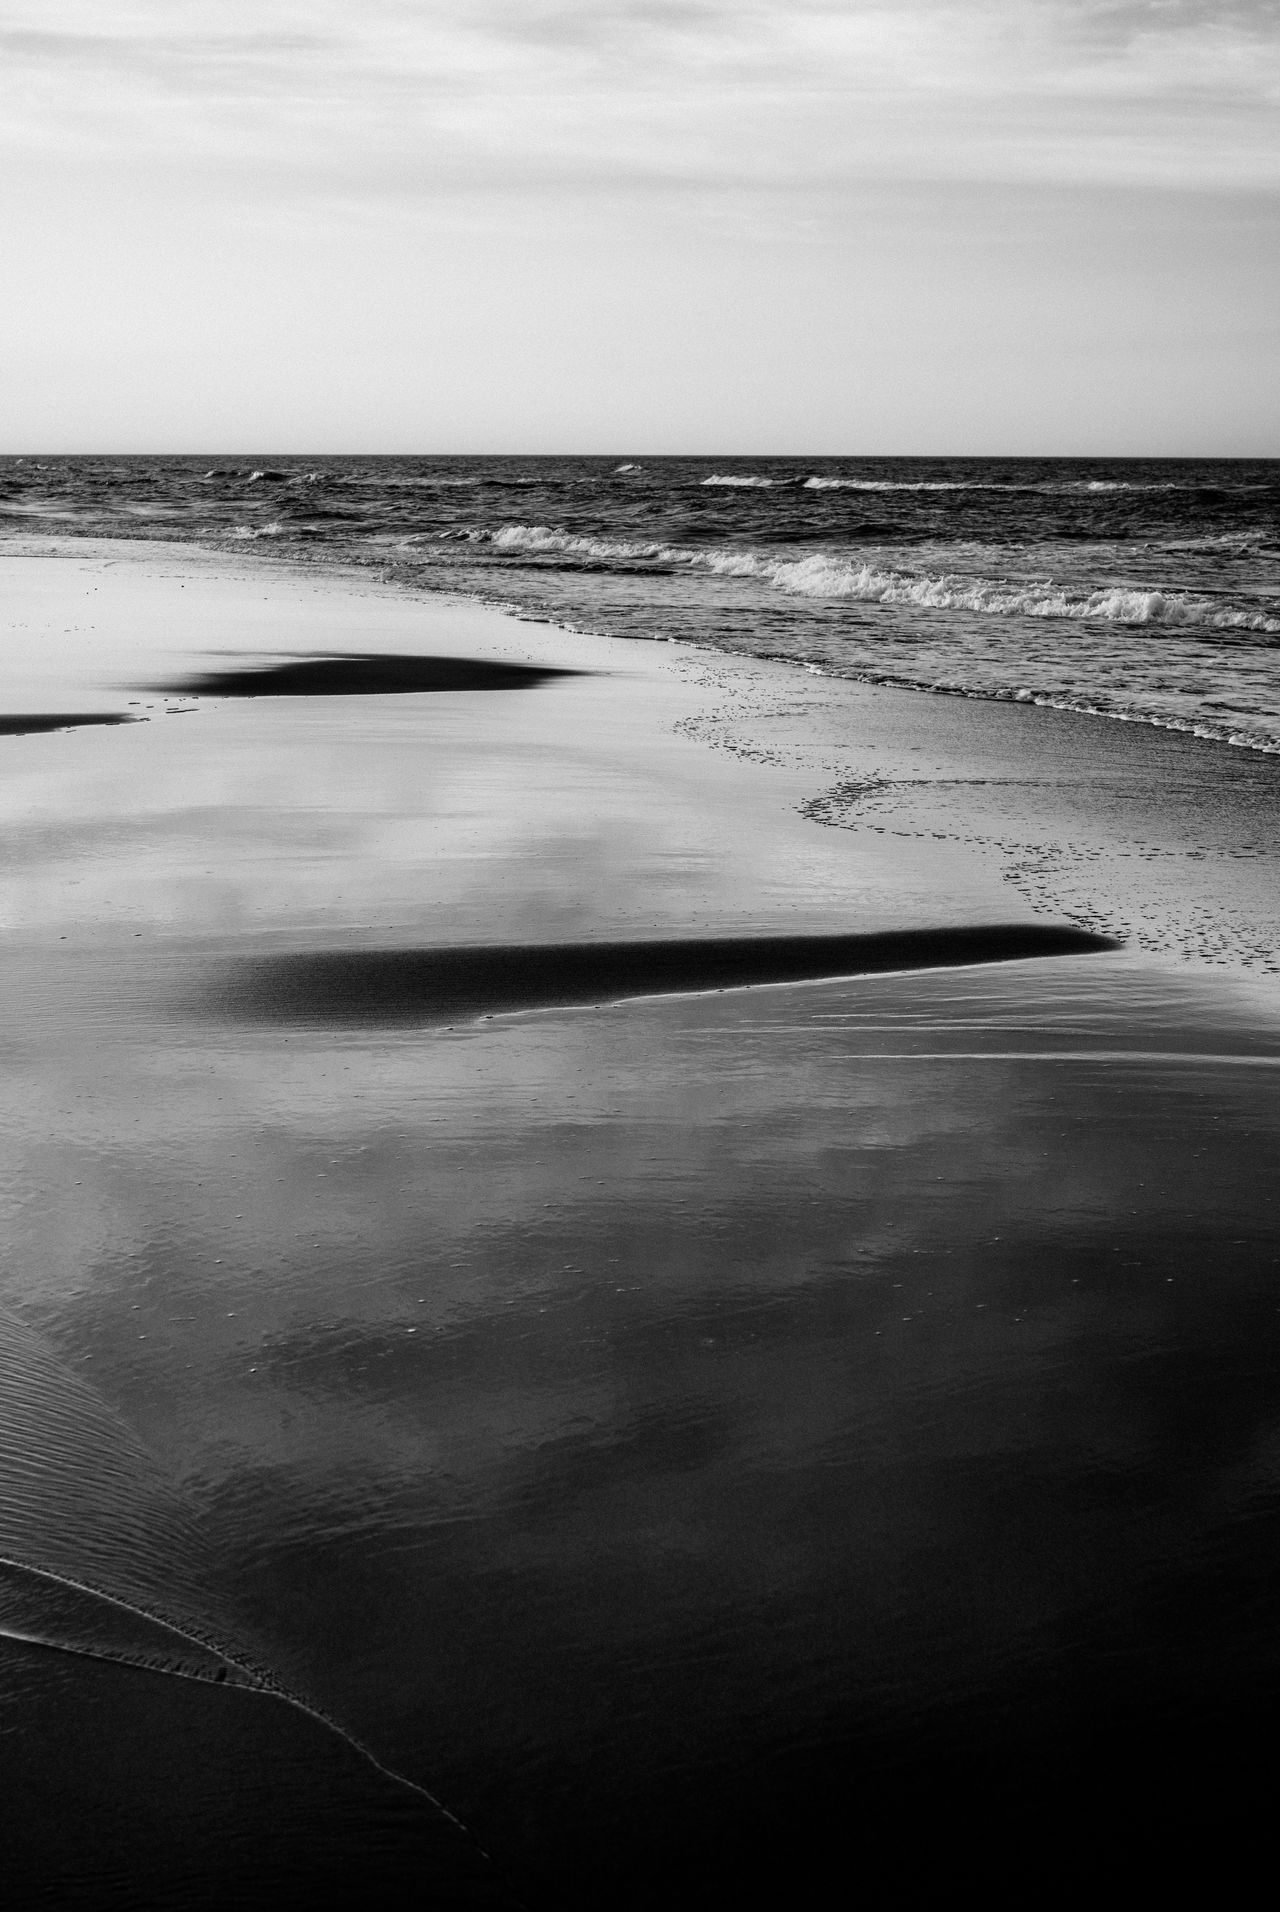 Abstract Photography Beach Beach Photography Beauty In Nature Black And White Photography Blackandwhite Day Horizon Over Water Nature Nature Photography Nature_collection No People Outdoors Scenics Sea Sky Tranquil Scene Tranquility Water Water Reflections Water_collection Wave Waves, Ocean, Nature